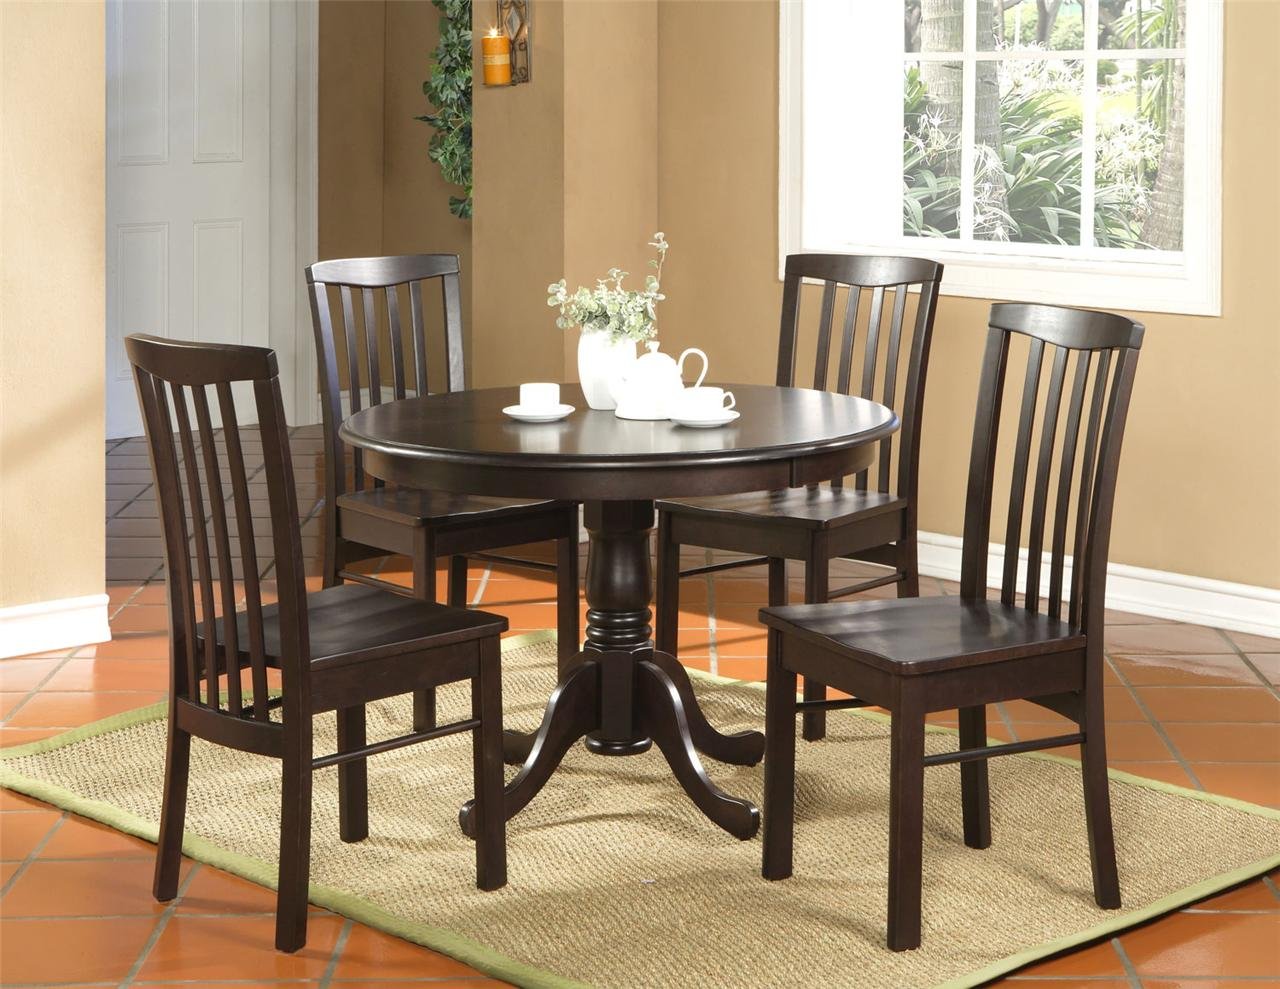 5pc round kitchen dinette set table and 4 chairs walnut ebay for Kitchen table set 6 chairs